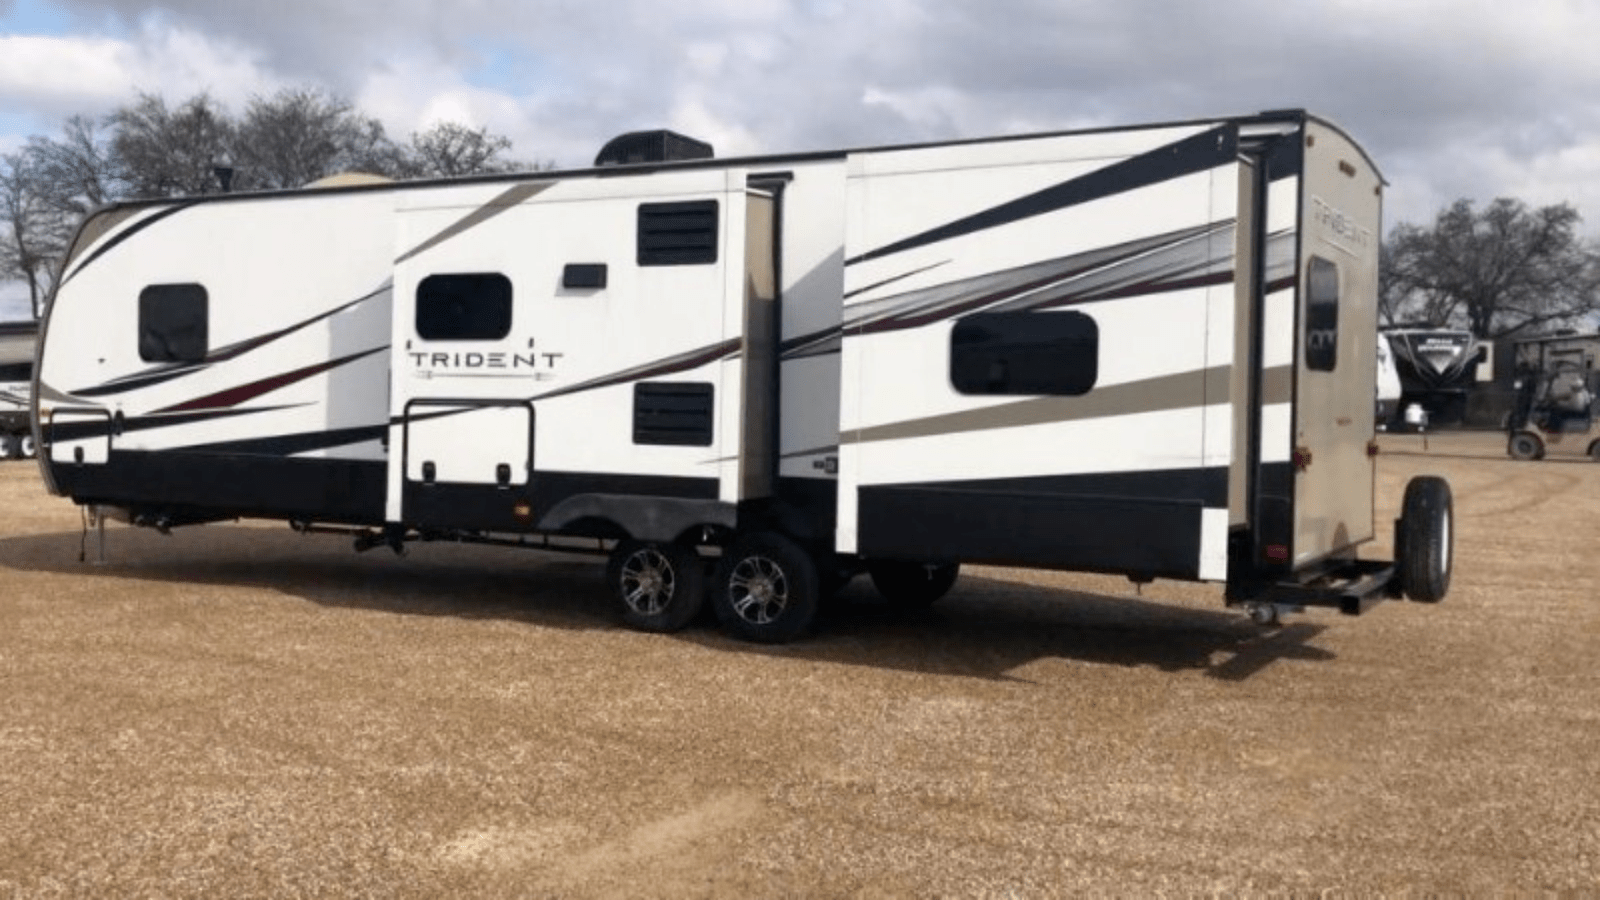 New & Used RVs Arlington TX, Used Motorhomes DFW, Travel